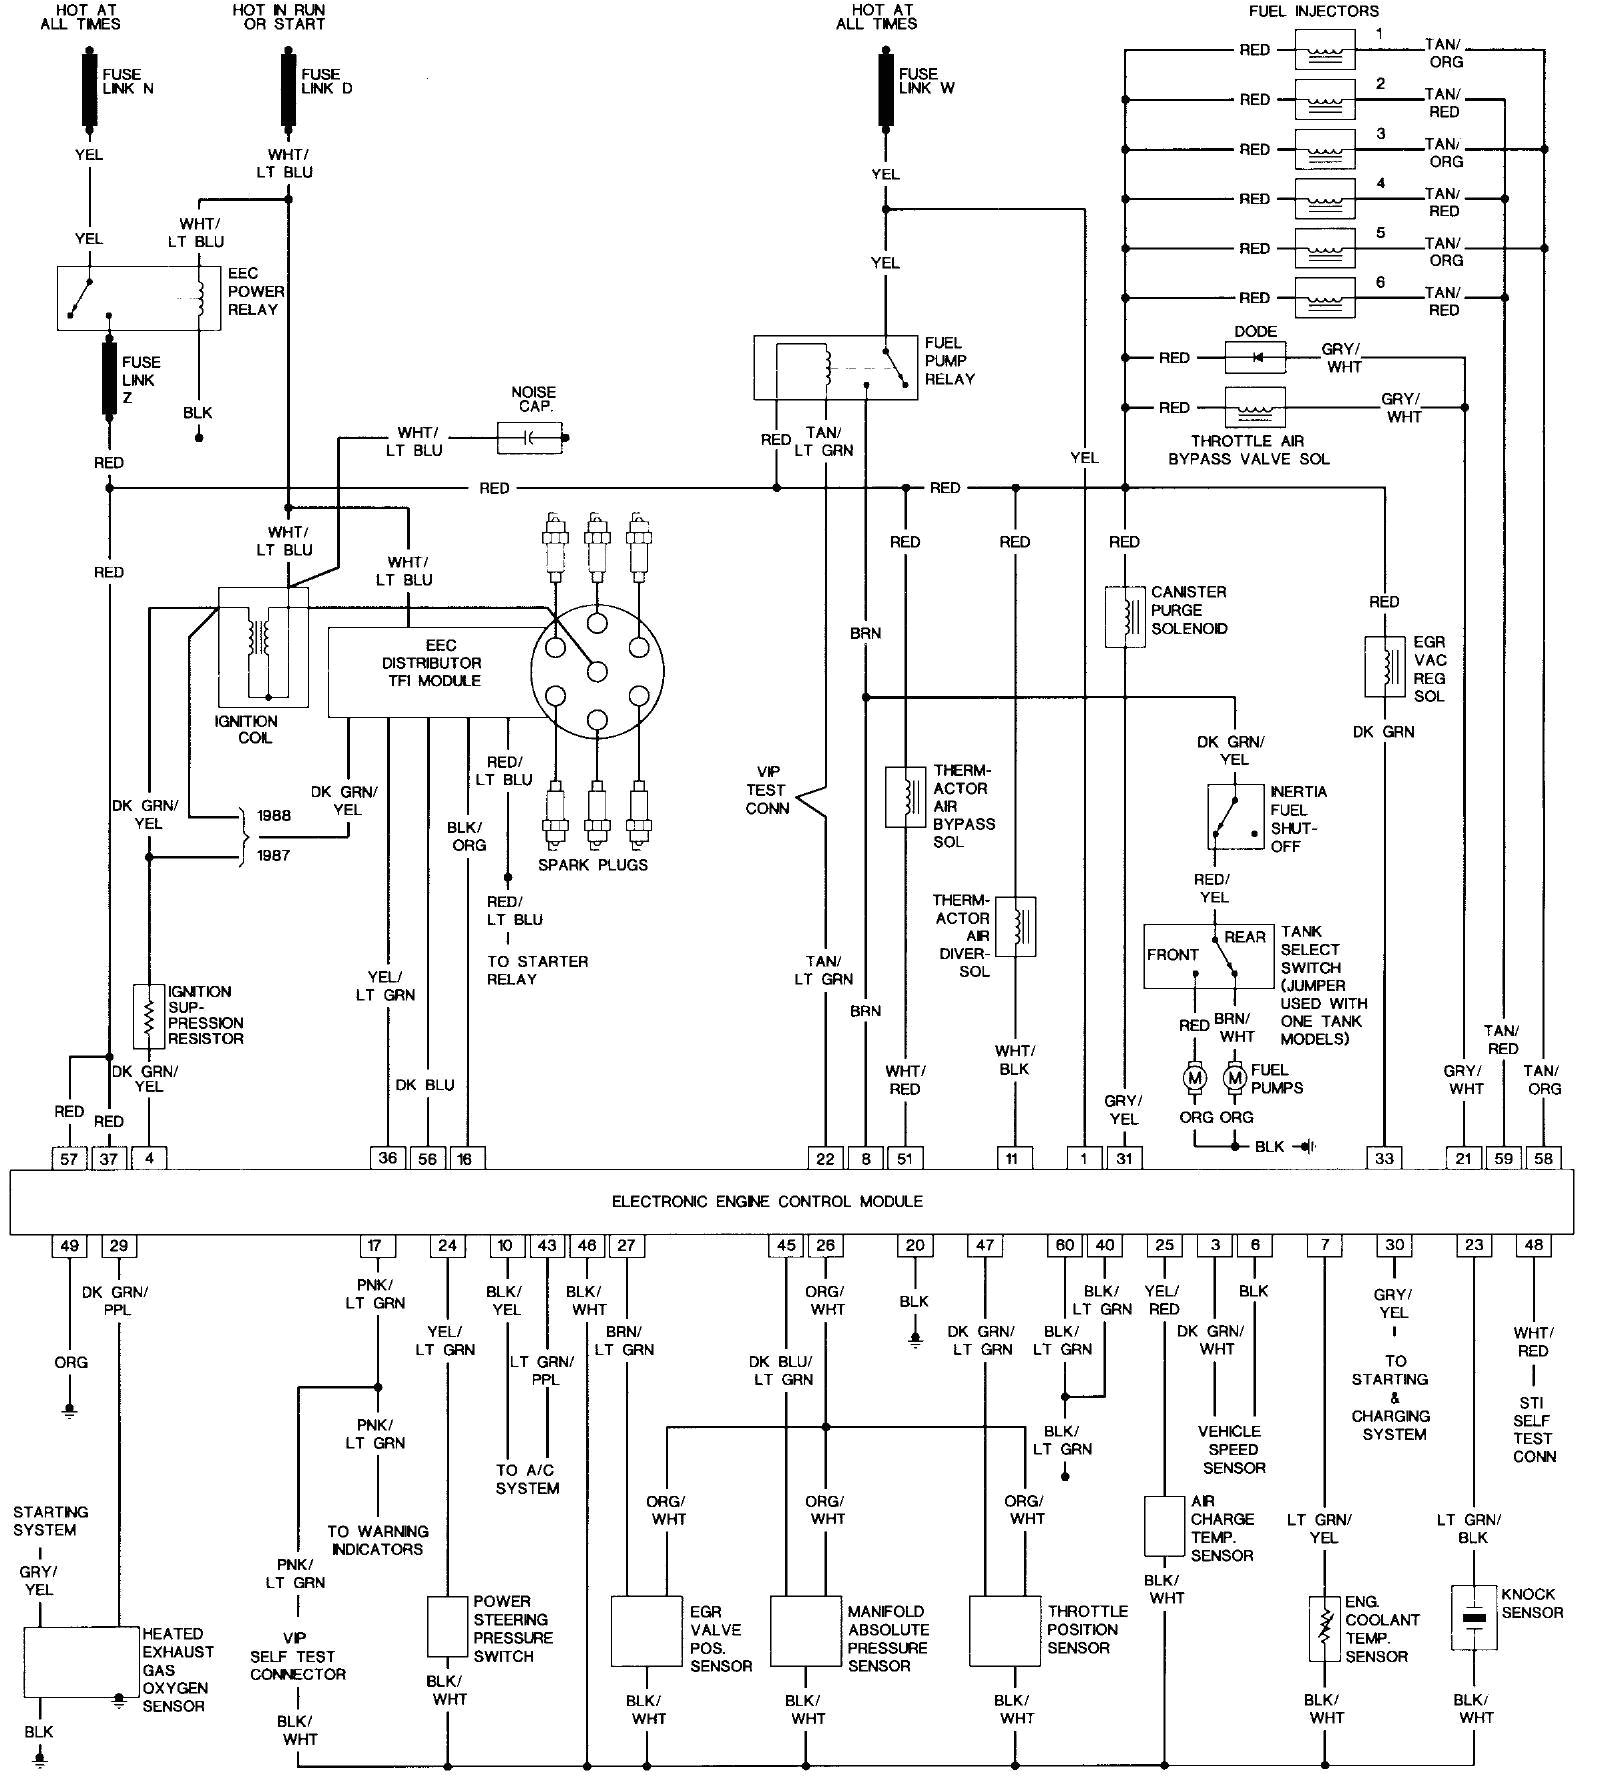 2003 ford f 250 wiring diagram wiring diagram world 2003 ford f250 wiring diagram online 2003 ford super duty wiring diagram